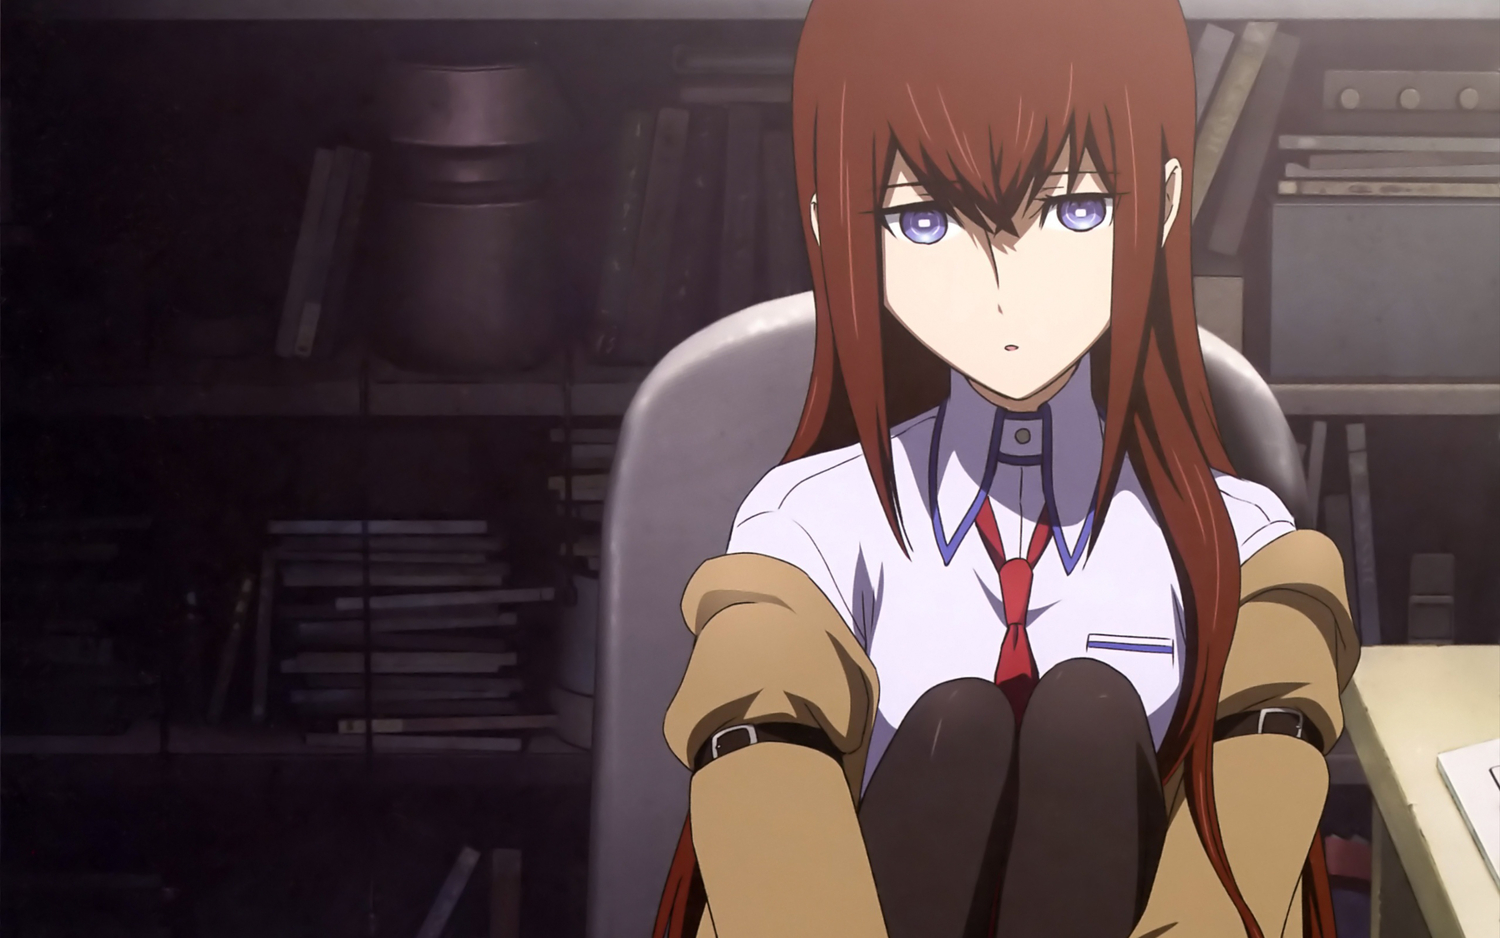 makise_kurisu steins;gate